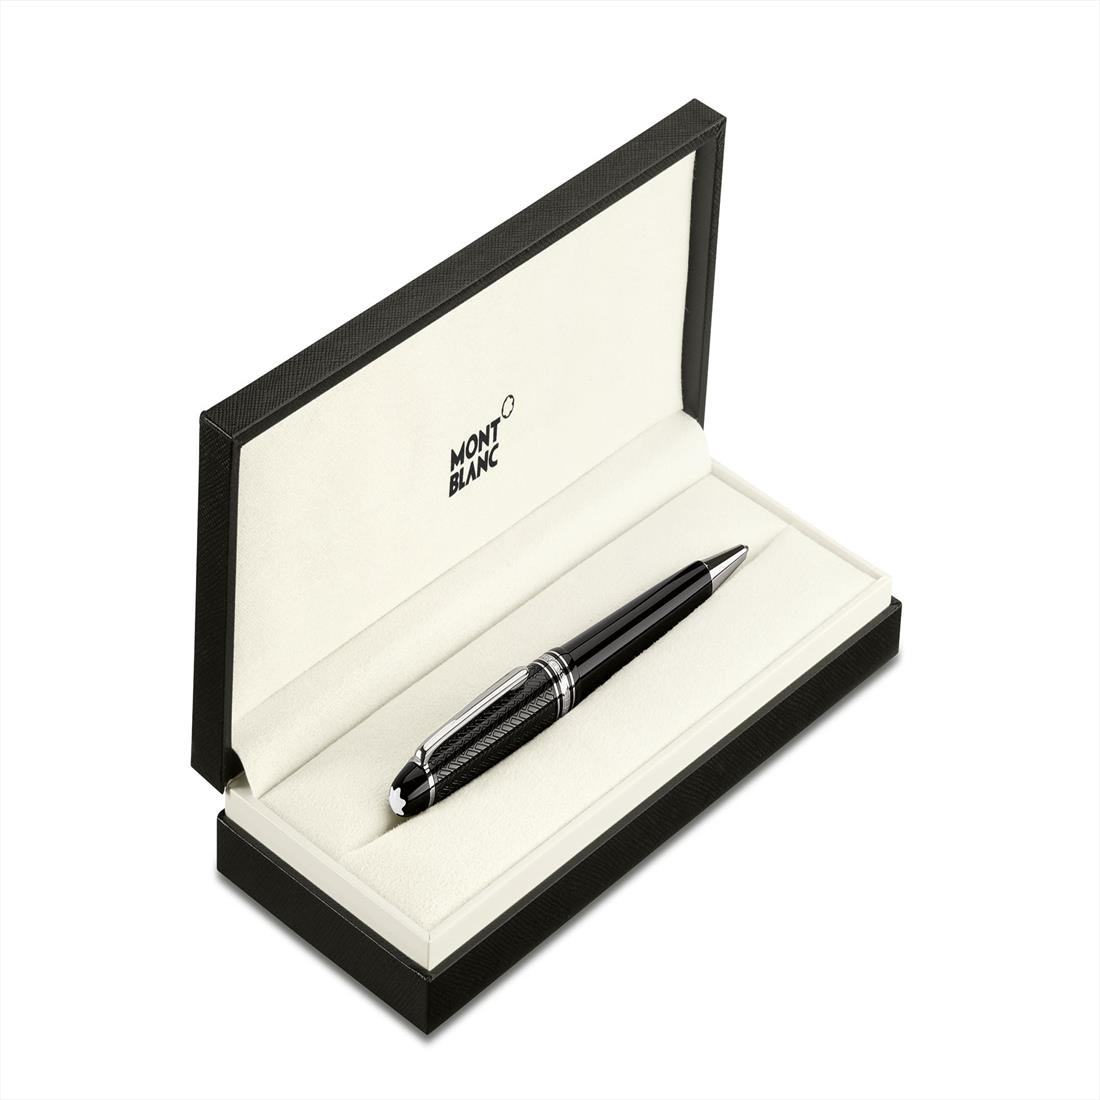 MONTBLANC FOR BMW ROLLERBALL